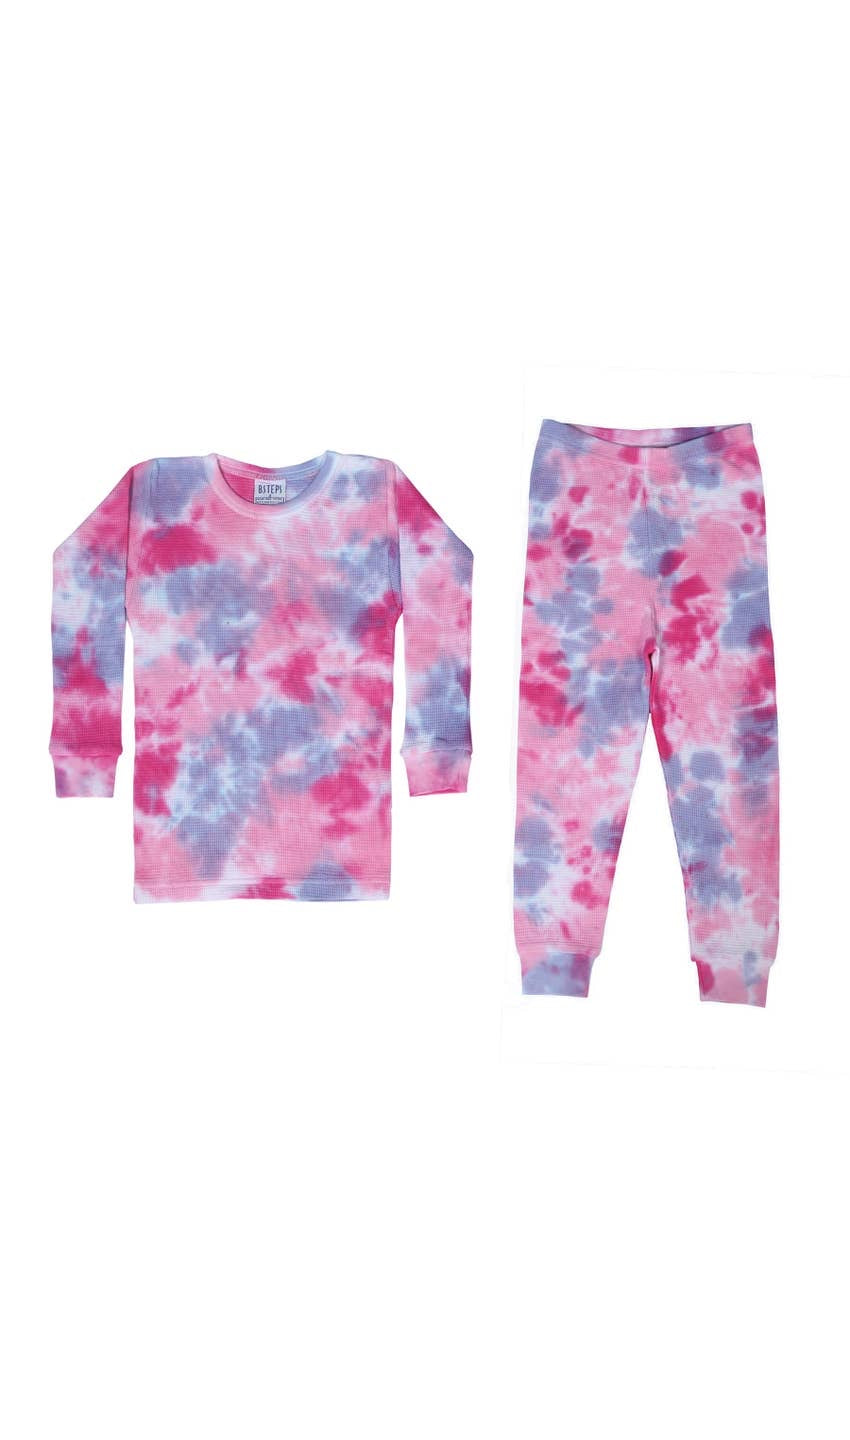 Baby Steps Diva Thermal Tie Dye Set